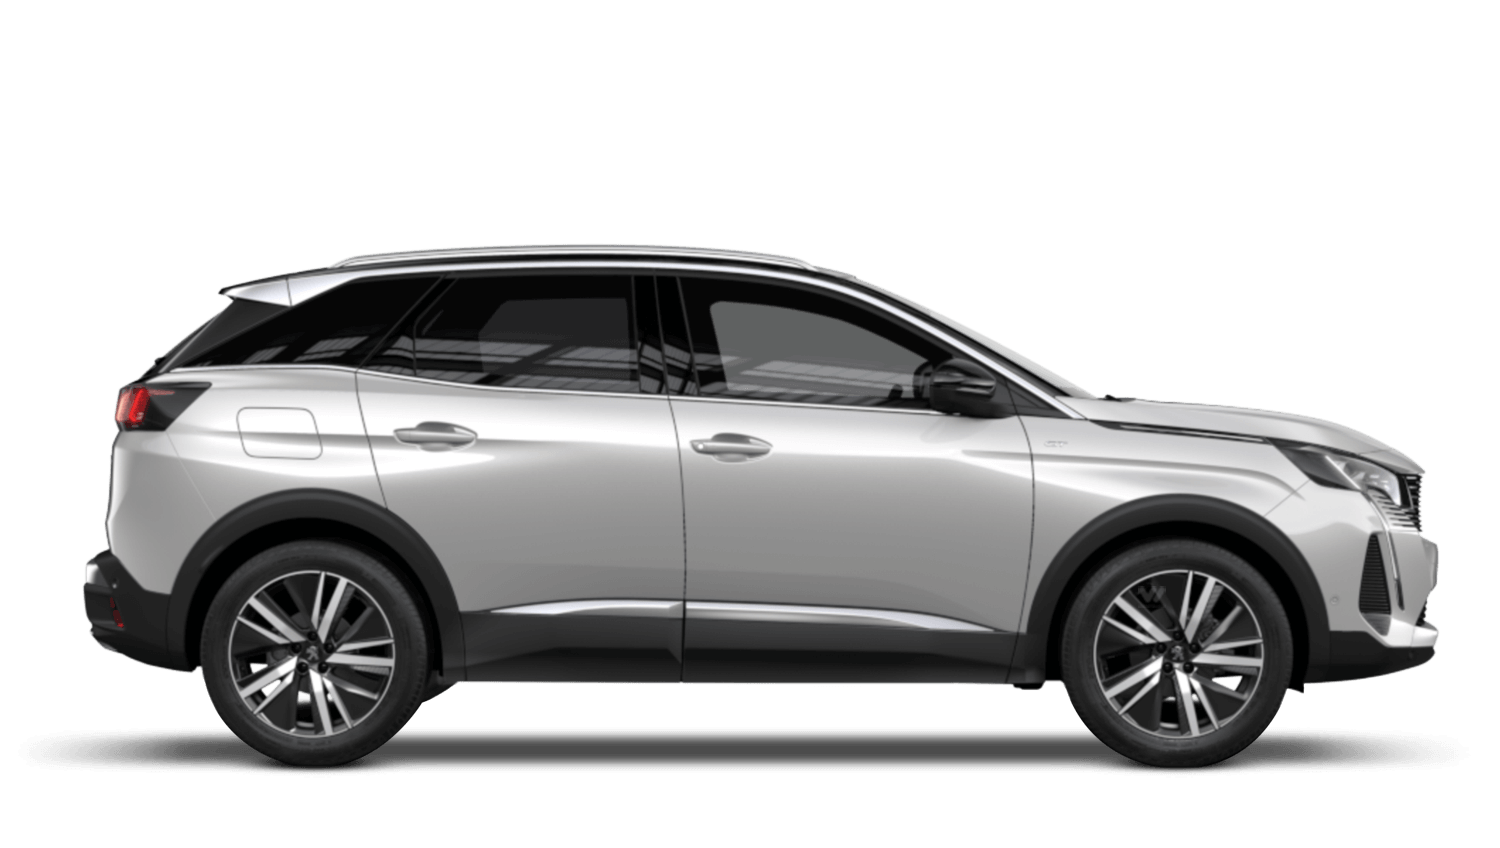 Pearlescent White New Peugeot 3008 SUV Hybrid